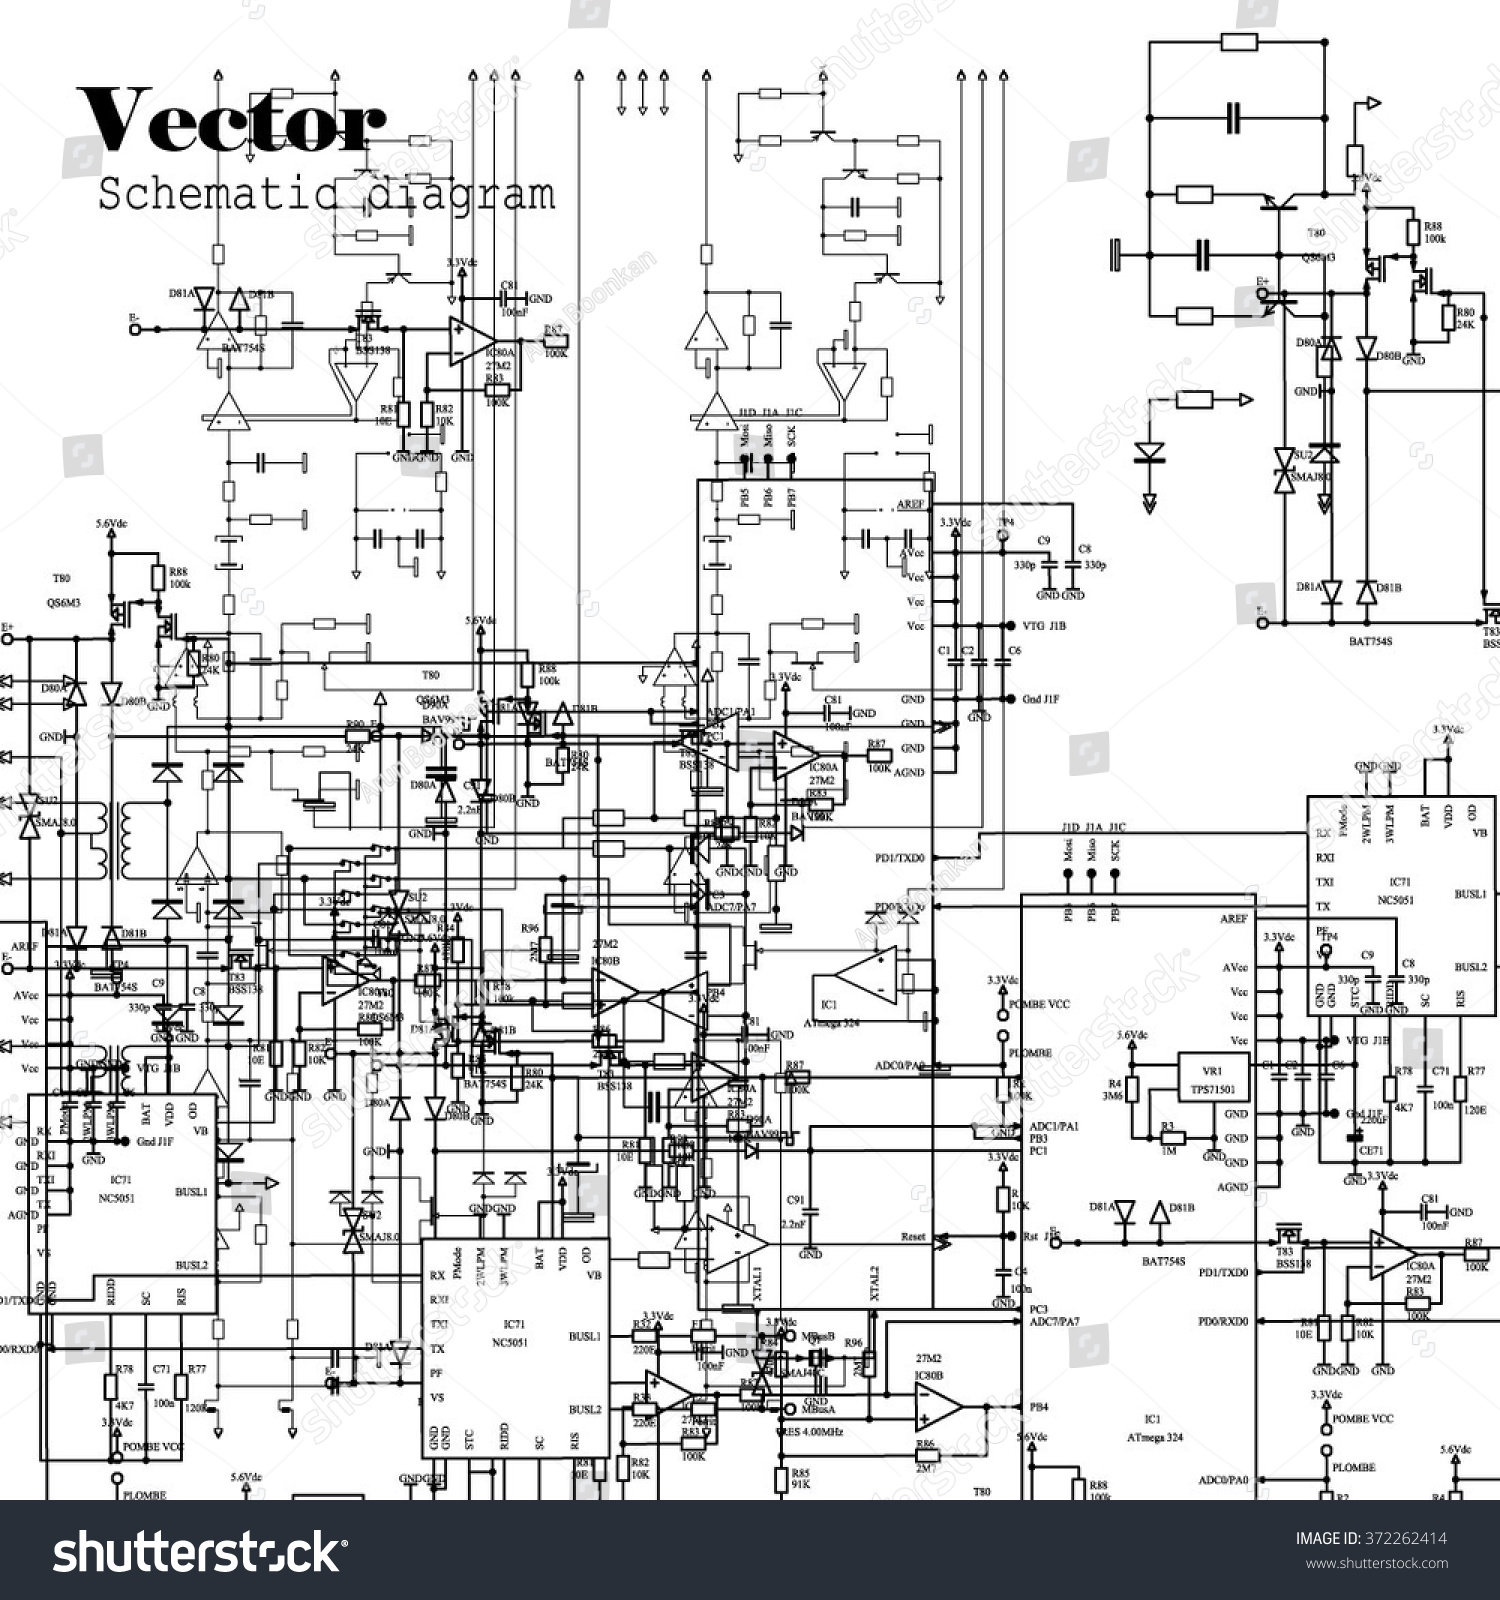 Schematic Diagram Project Electronic Circuit Graphic Stock Vector Projects Of